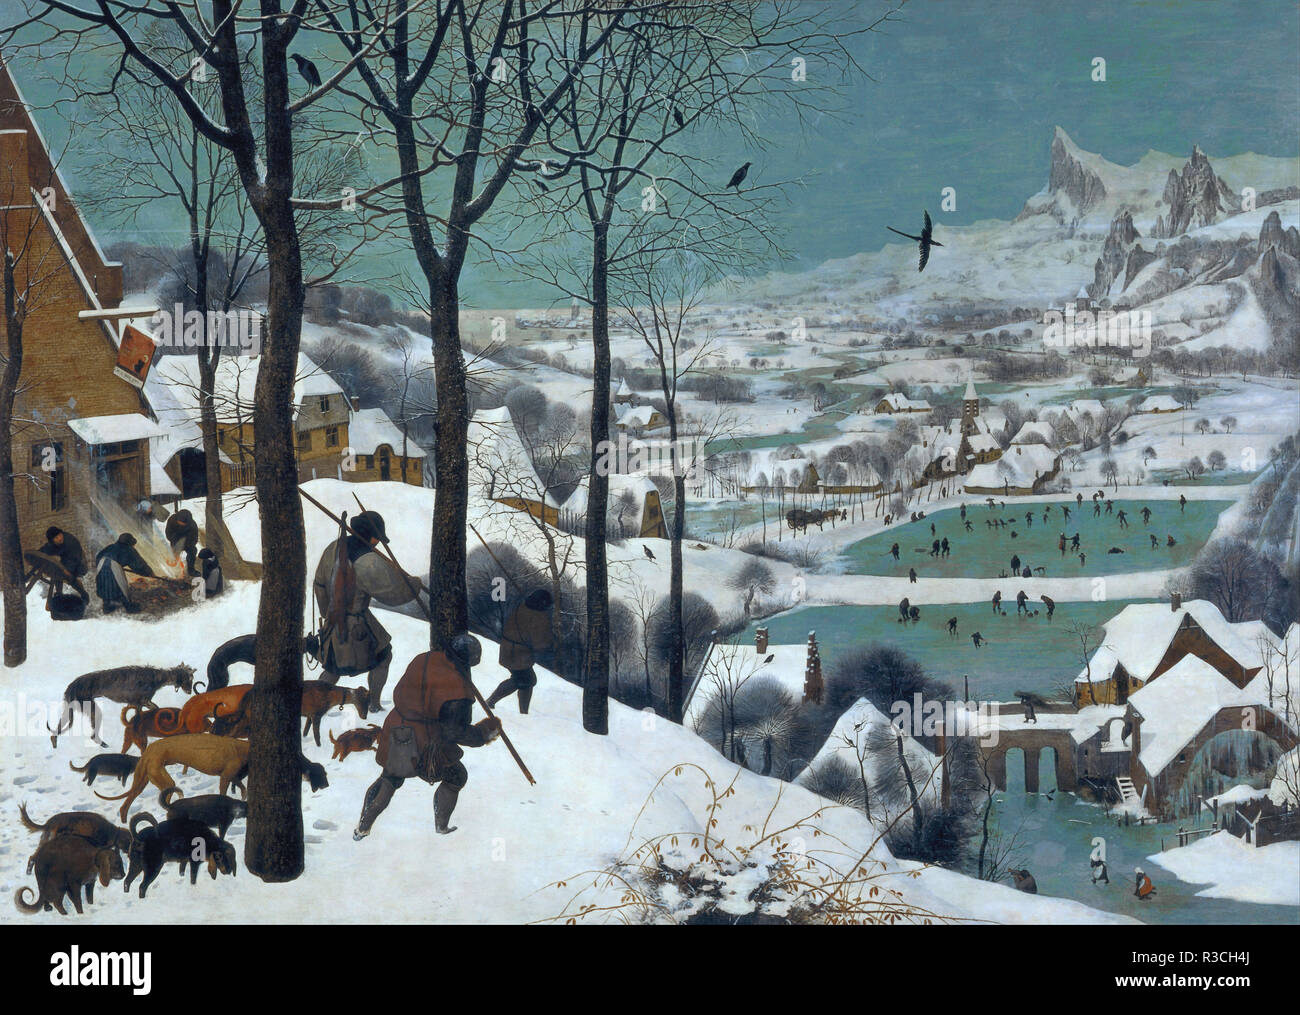 Monthly cycle, scene: The Hunters in the Snow (winter). Date/Period: 1565. Painting. Oil on oak panel. Height: 1,170 mm (46.06 in); Width: 1,620 mm (63.77 in). Author: Pieter Brueghel The Elder. PIETER BRUEGEL, THE ELDER. BRUEGEL THE ELDER, PIETER. Bruegel (Brueghel), Pieter, the Elder. - Stock Image